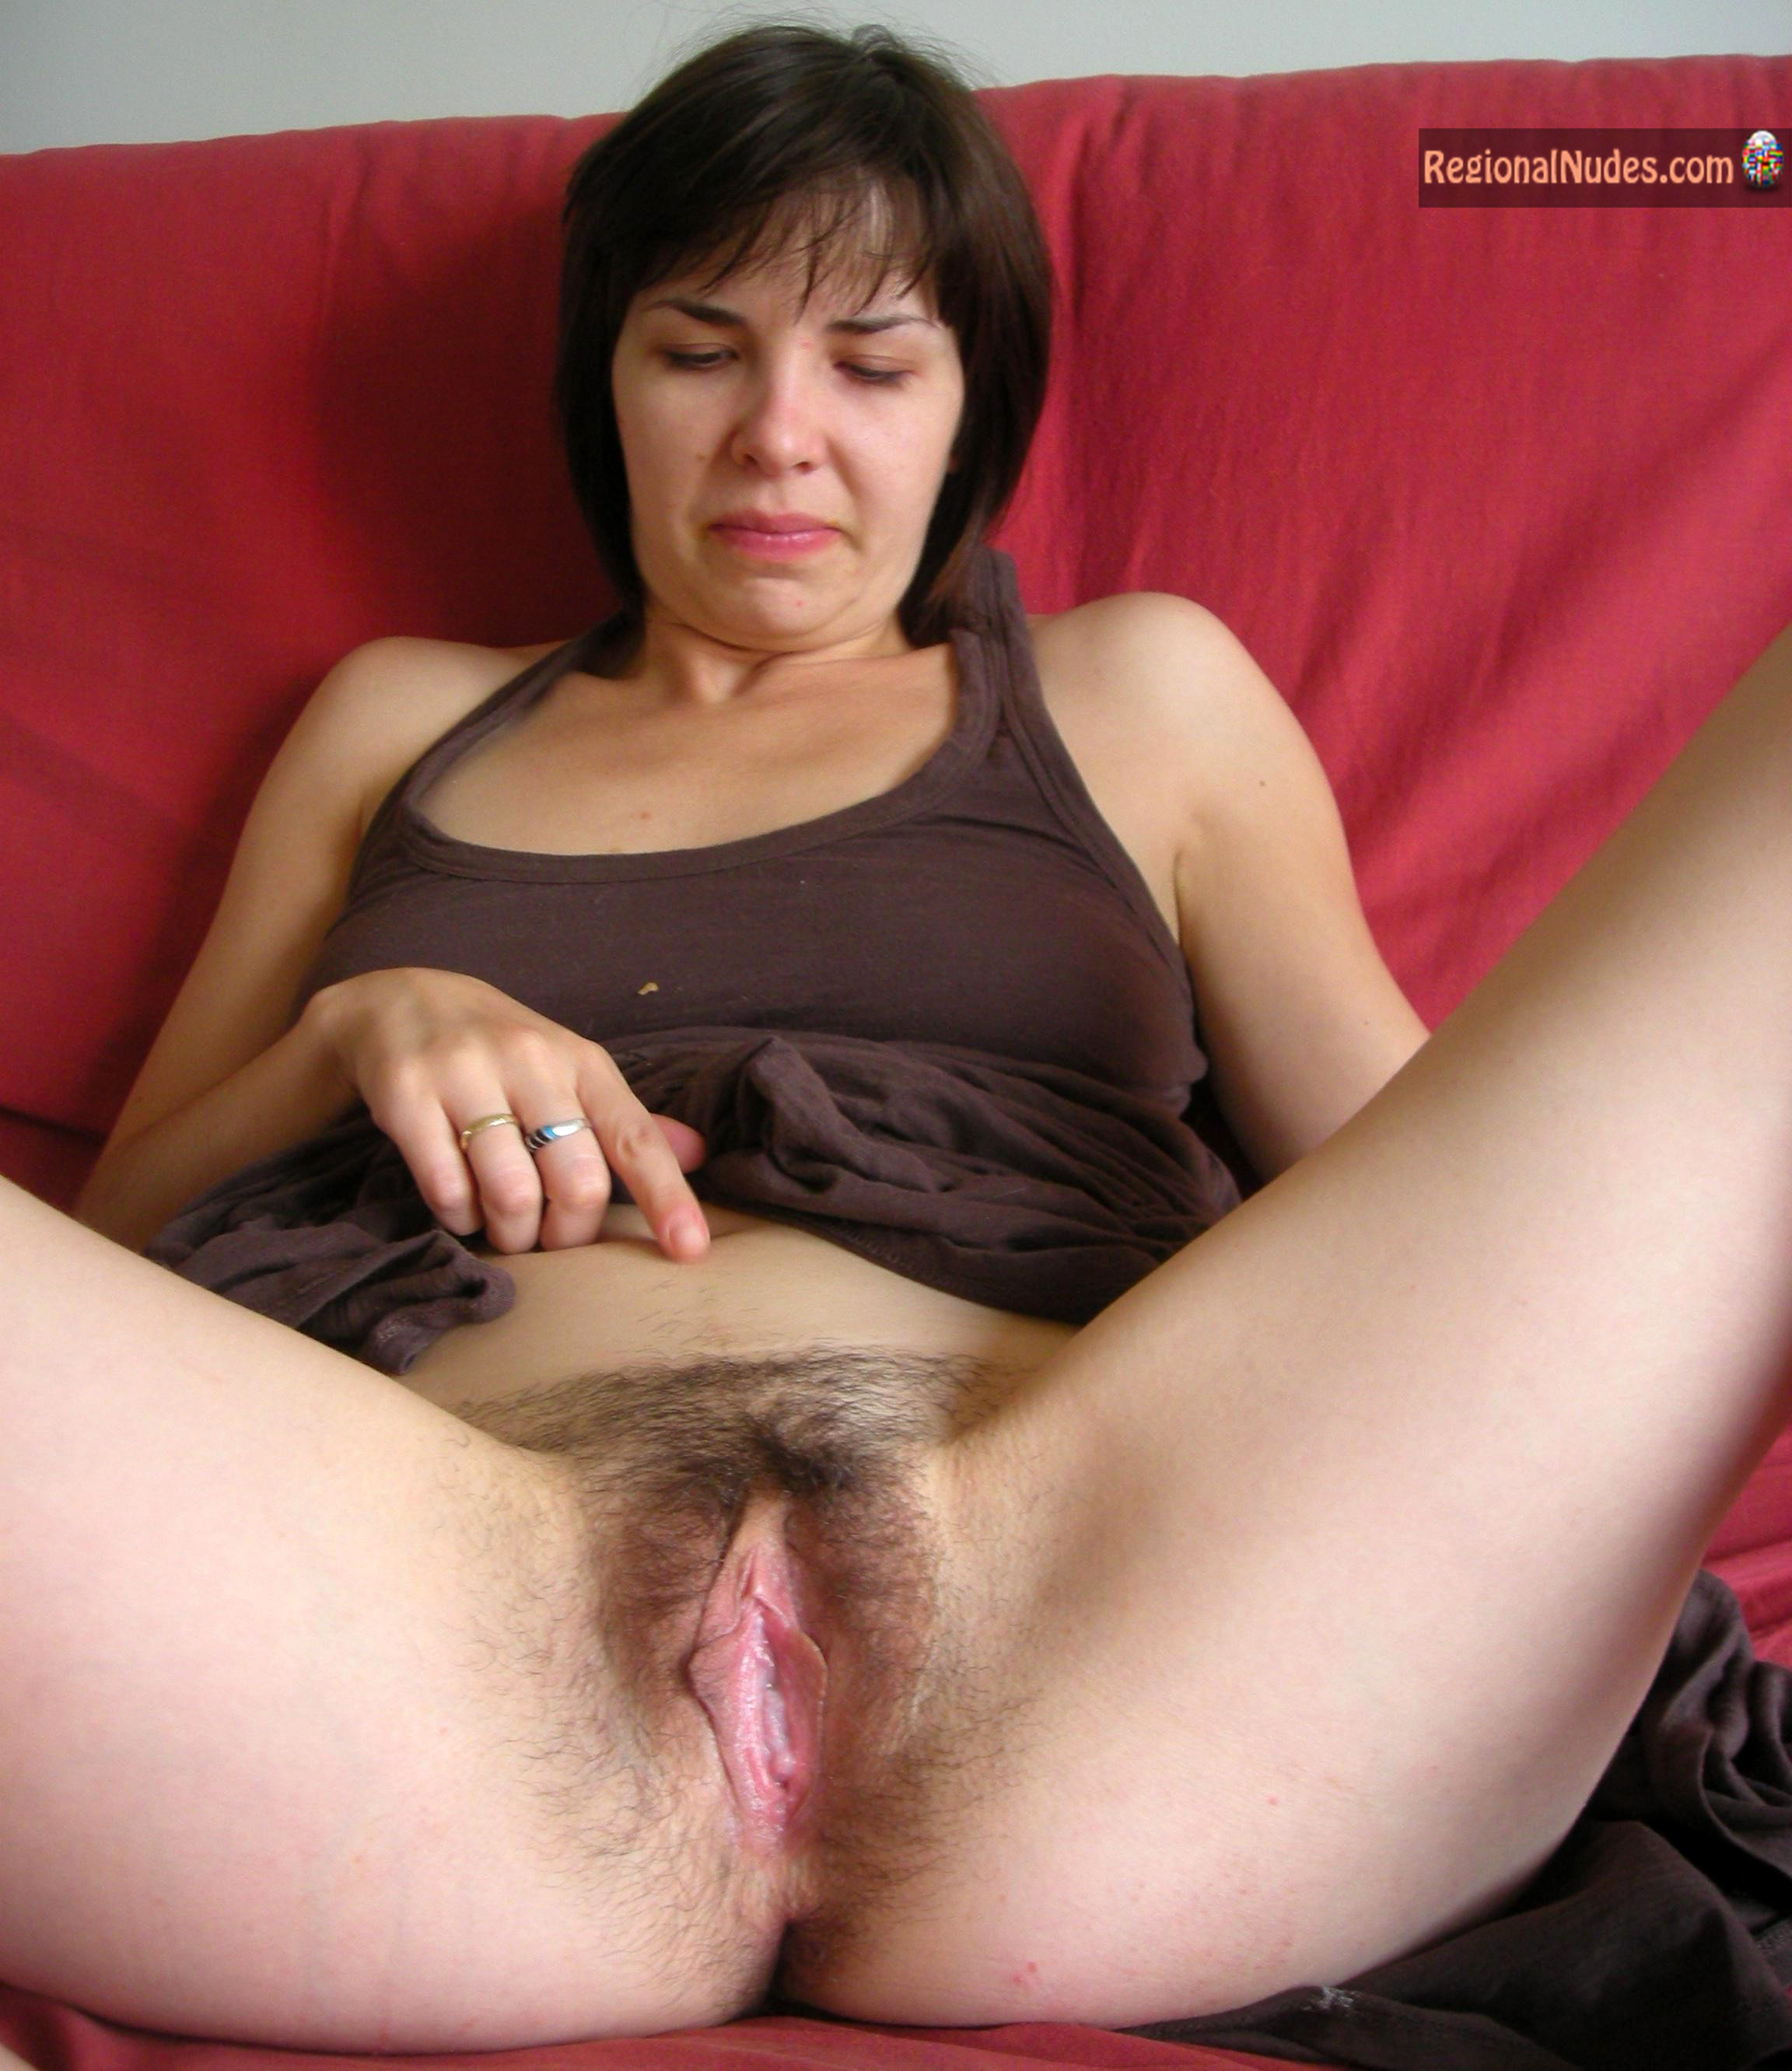 Hairy Nude Russian Women